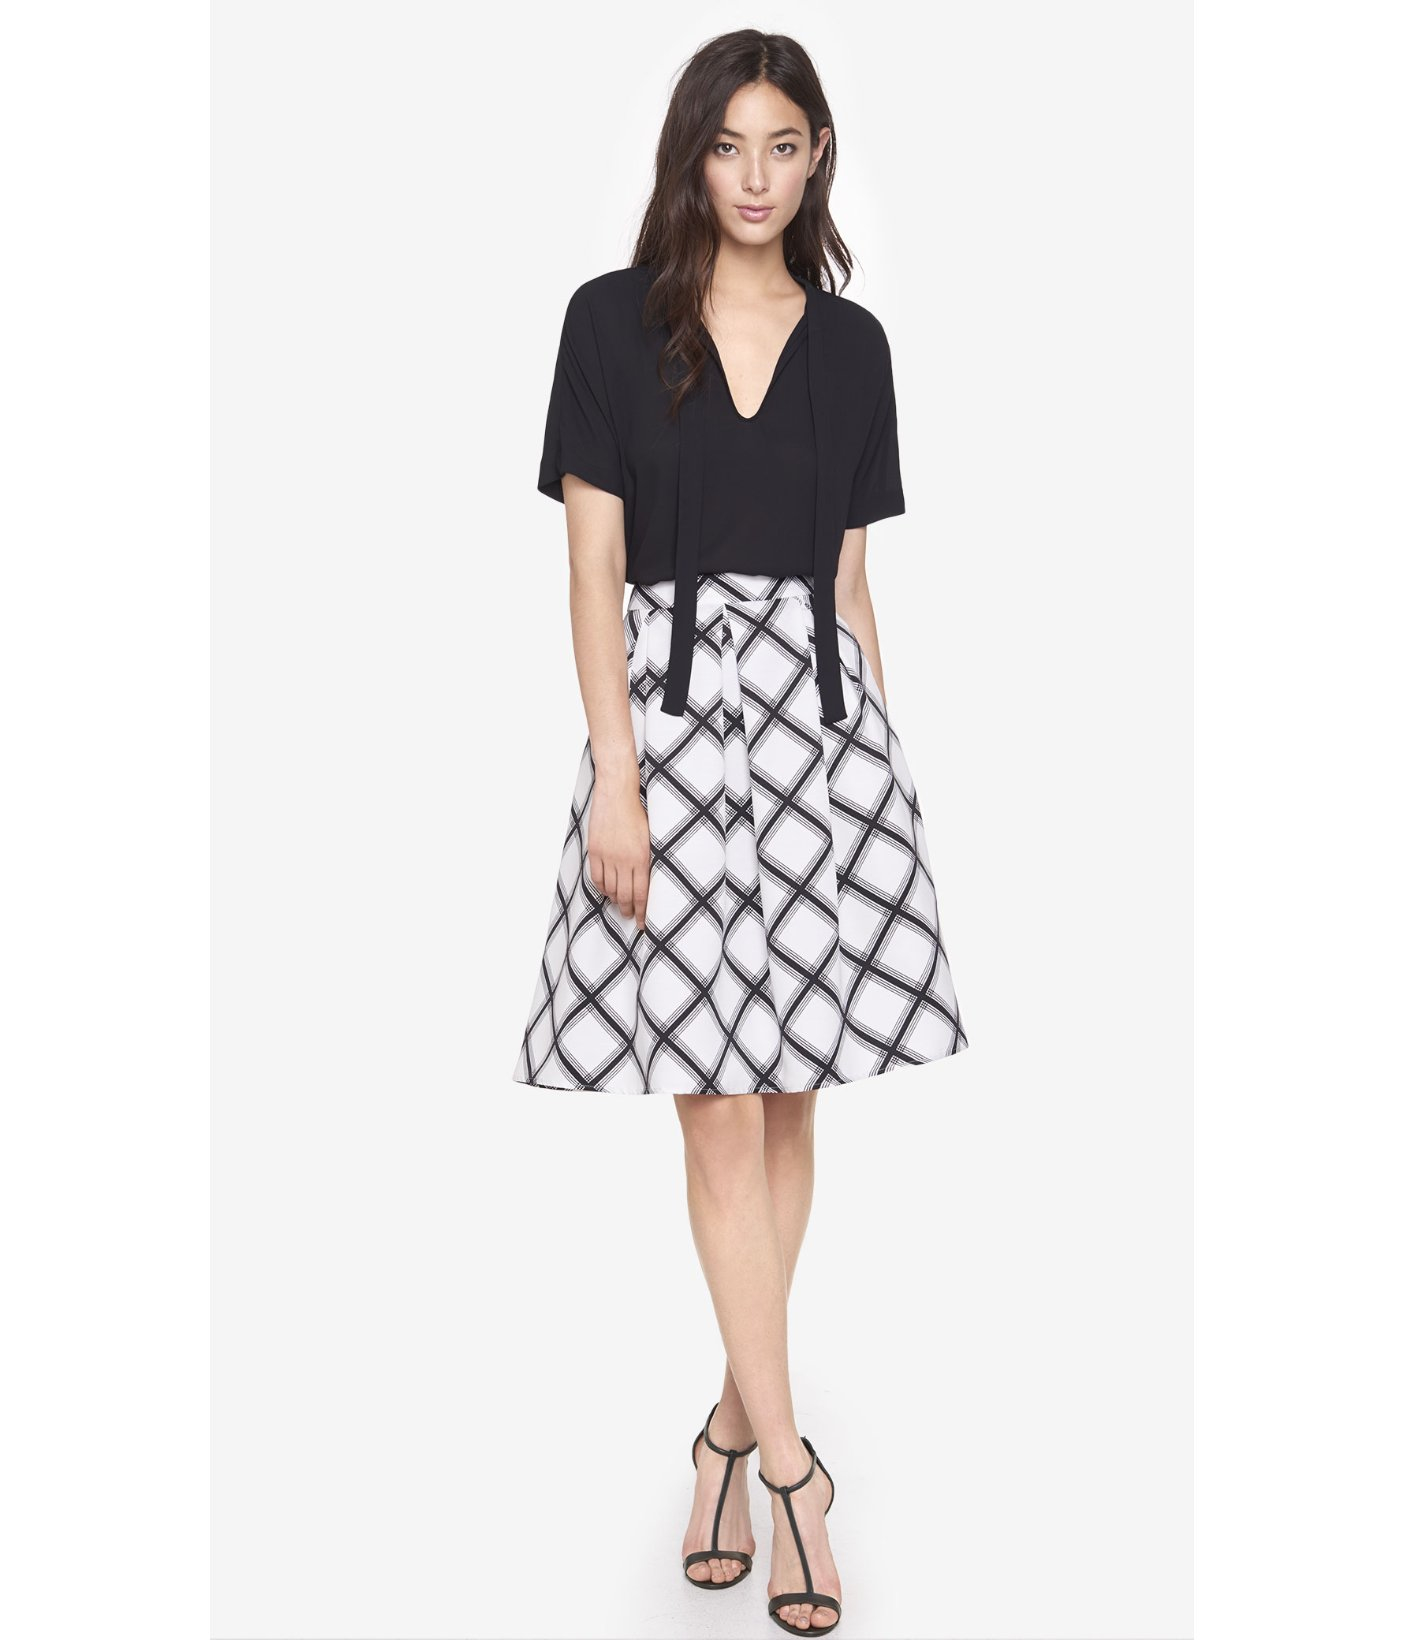 Tasteful yet bold, this satin floral print skirt will be a conversation starter at your next dinner party. Pair this with a simple monochrome top to let the pattern speak for itself, or match it with a satin camisole for a more daring look.